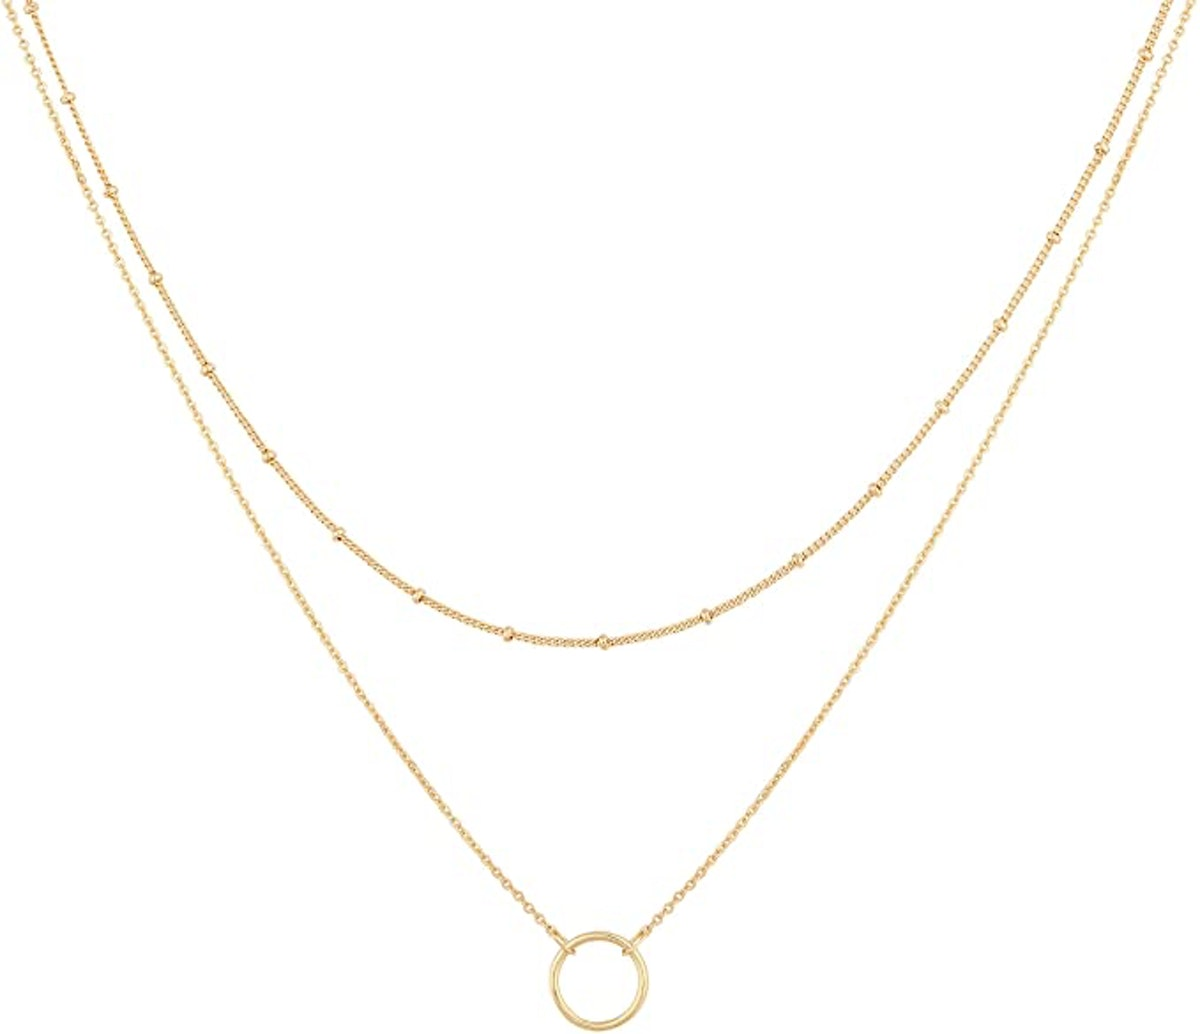 Mevecco 18k Gold Plated Layered Pendant